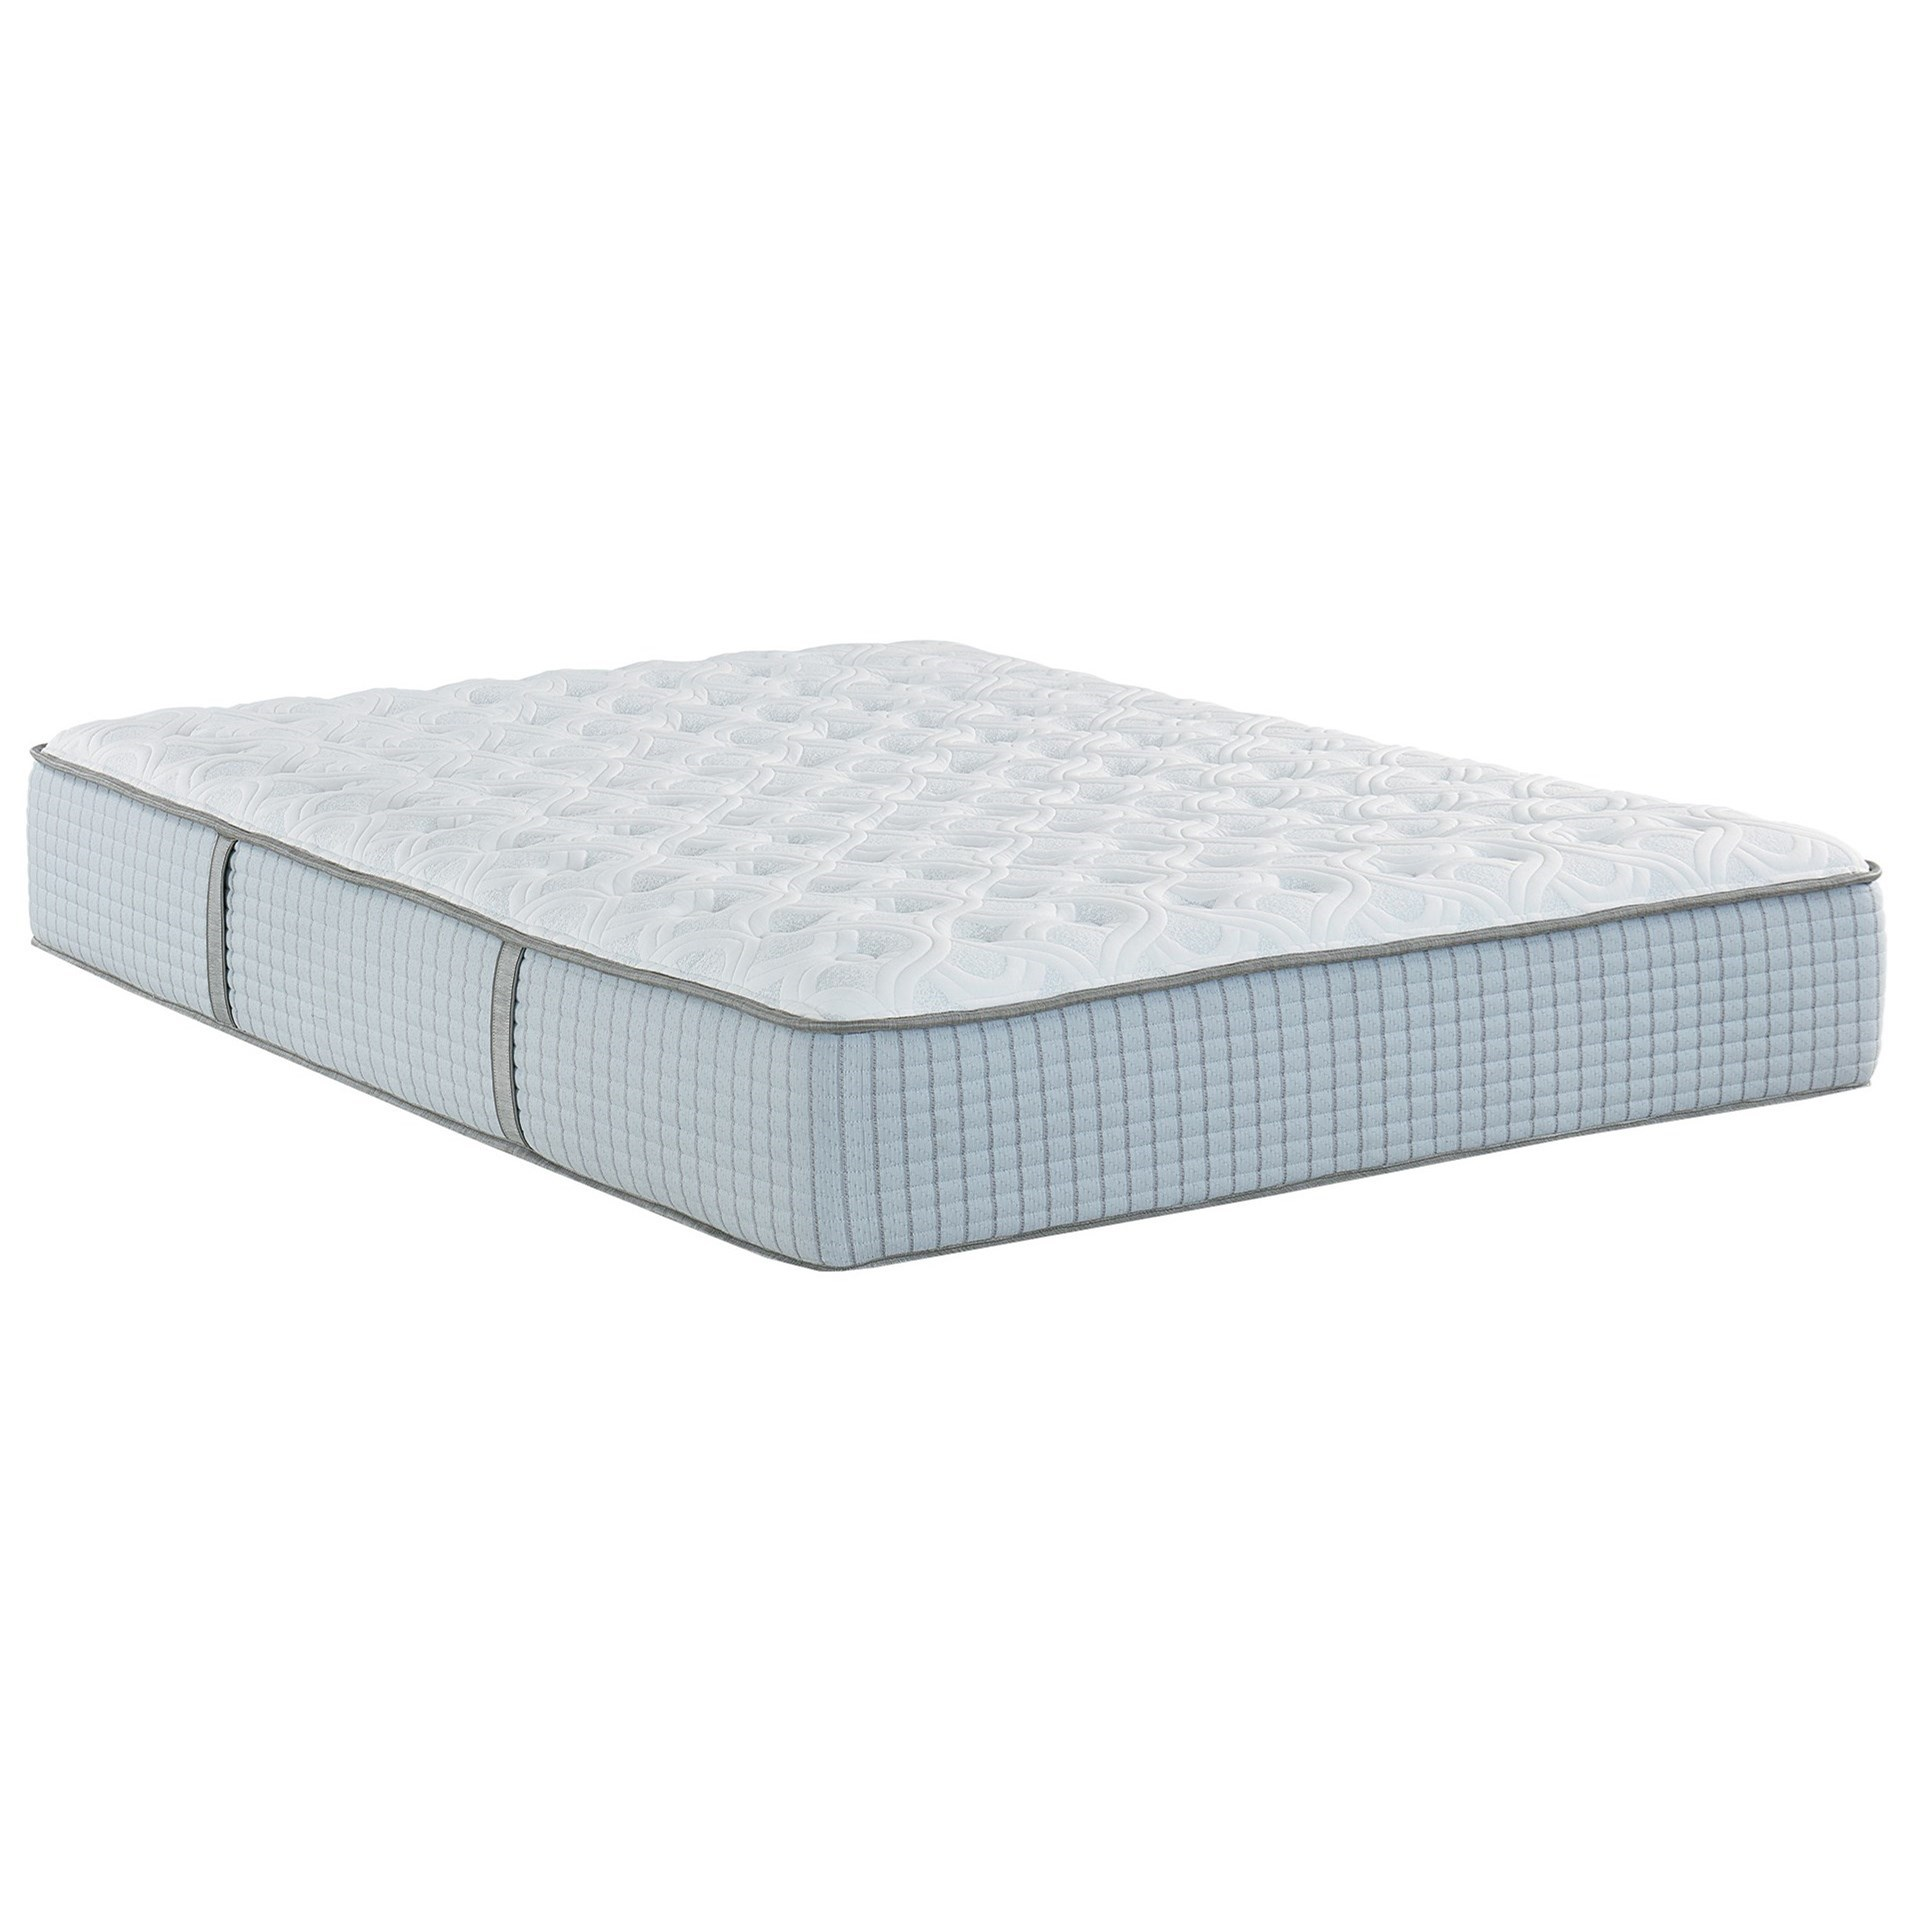 Clarion IV Luxury Plush and Luxury Firm Twin XL 2-Sided Firm / Plush Mattress by Restonic at Wilcox Furniture